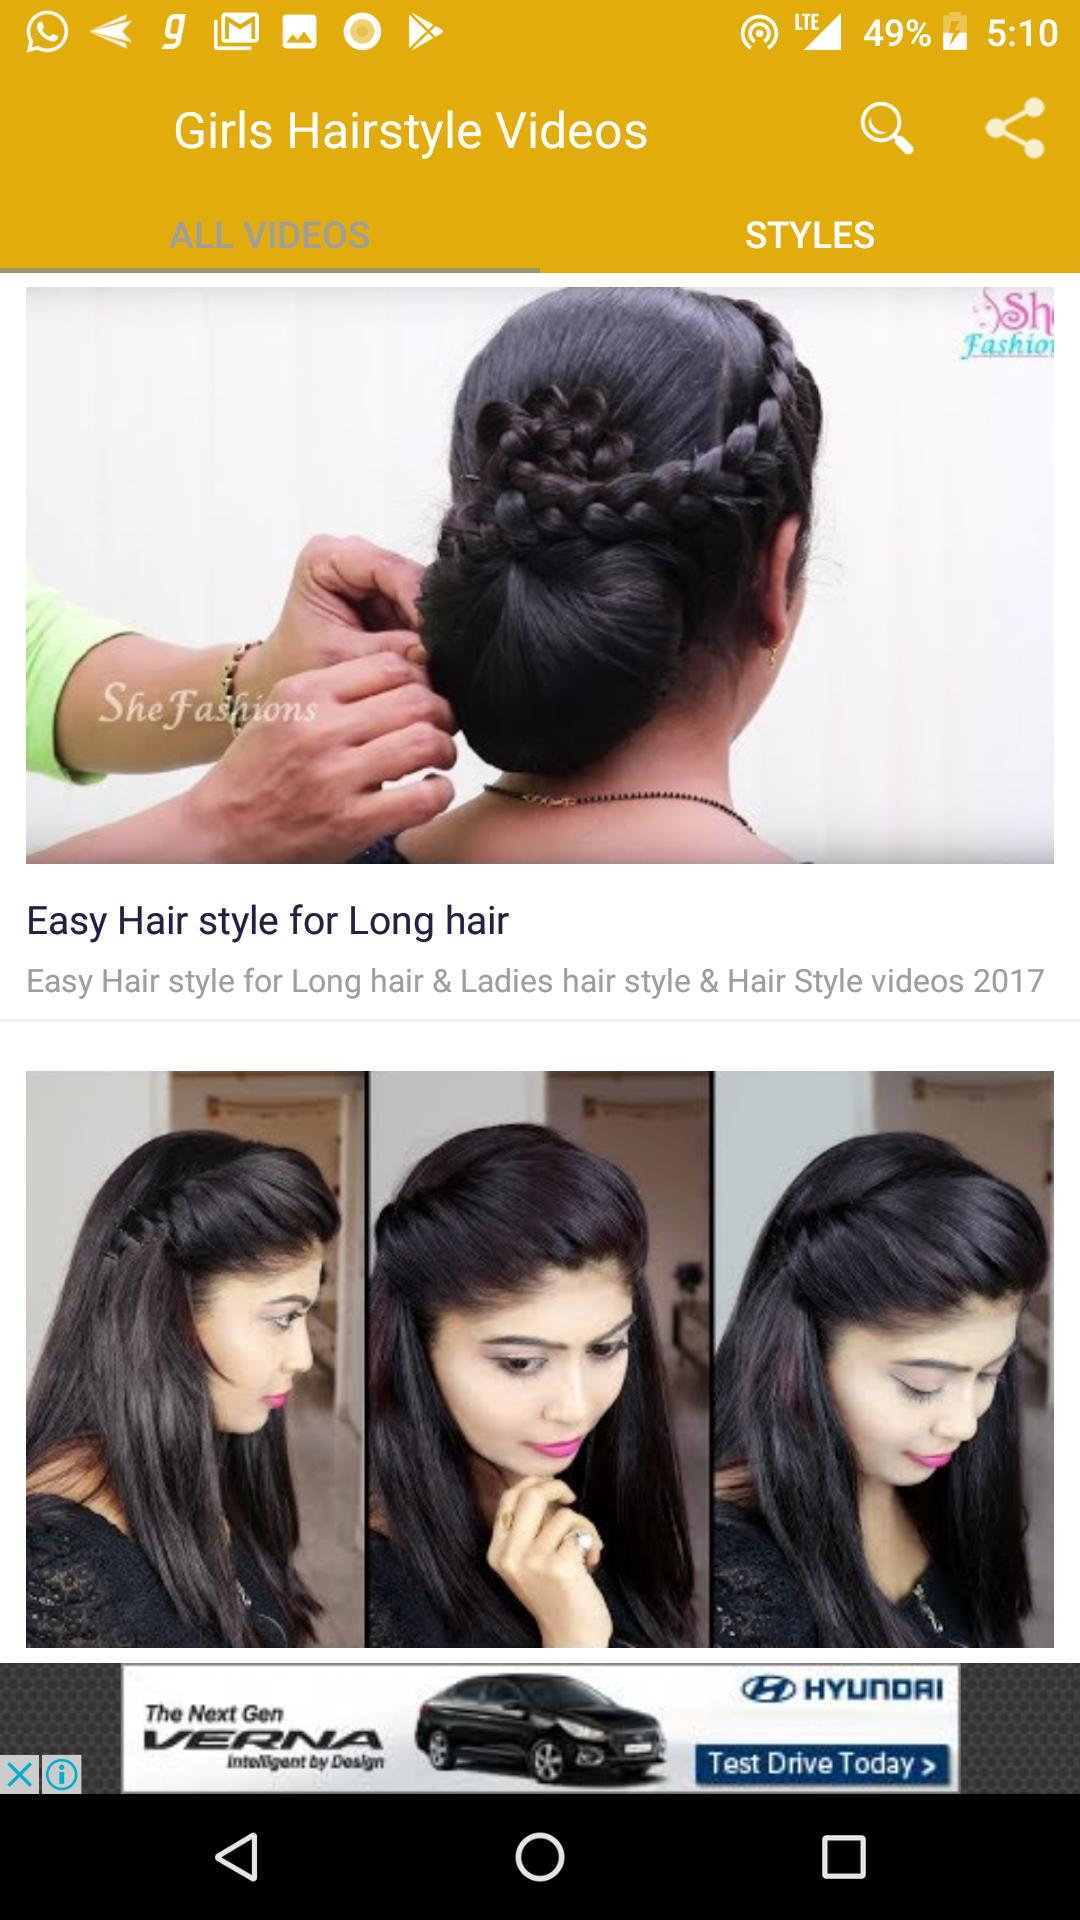 girls hairstyle videos for android - apk download